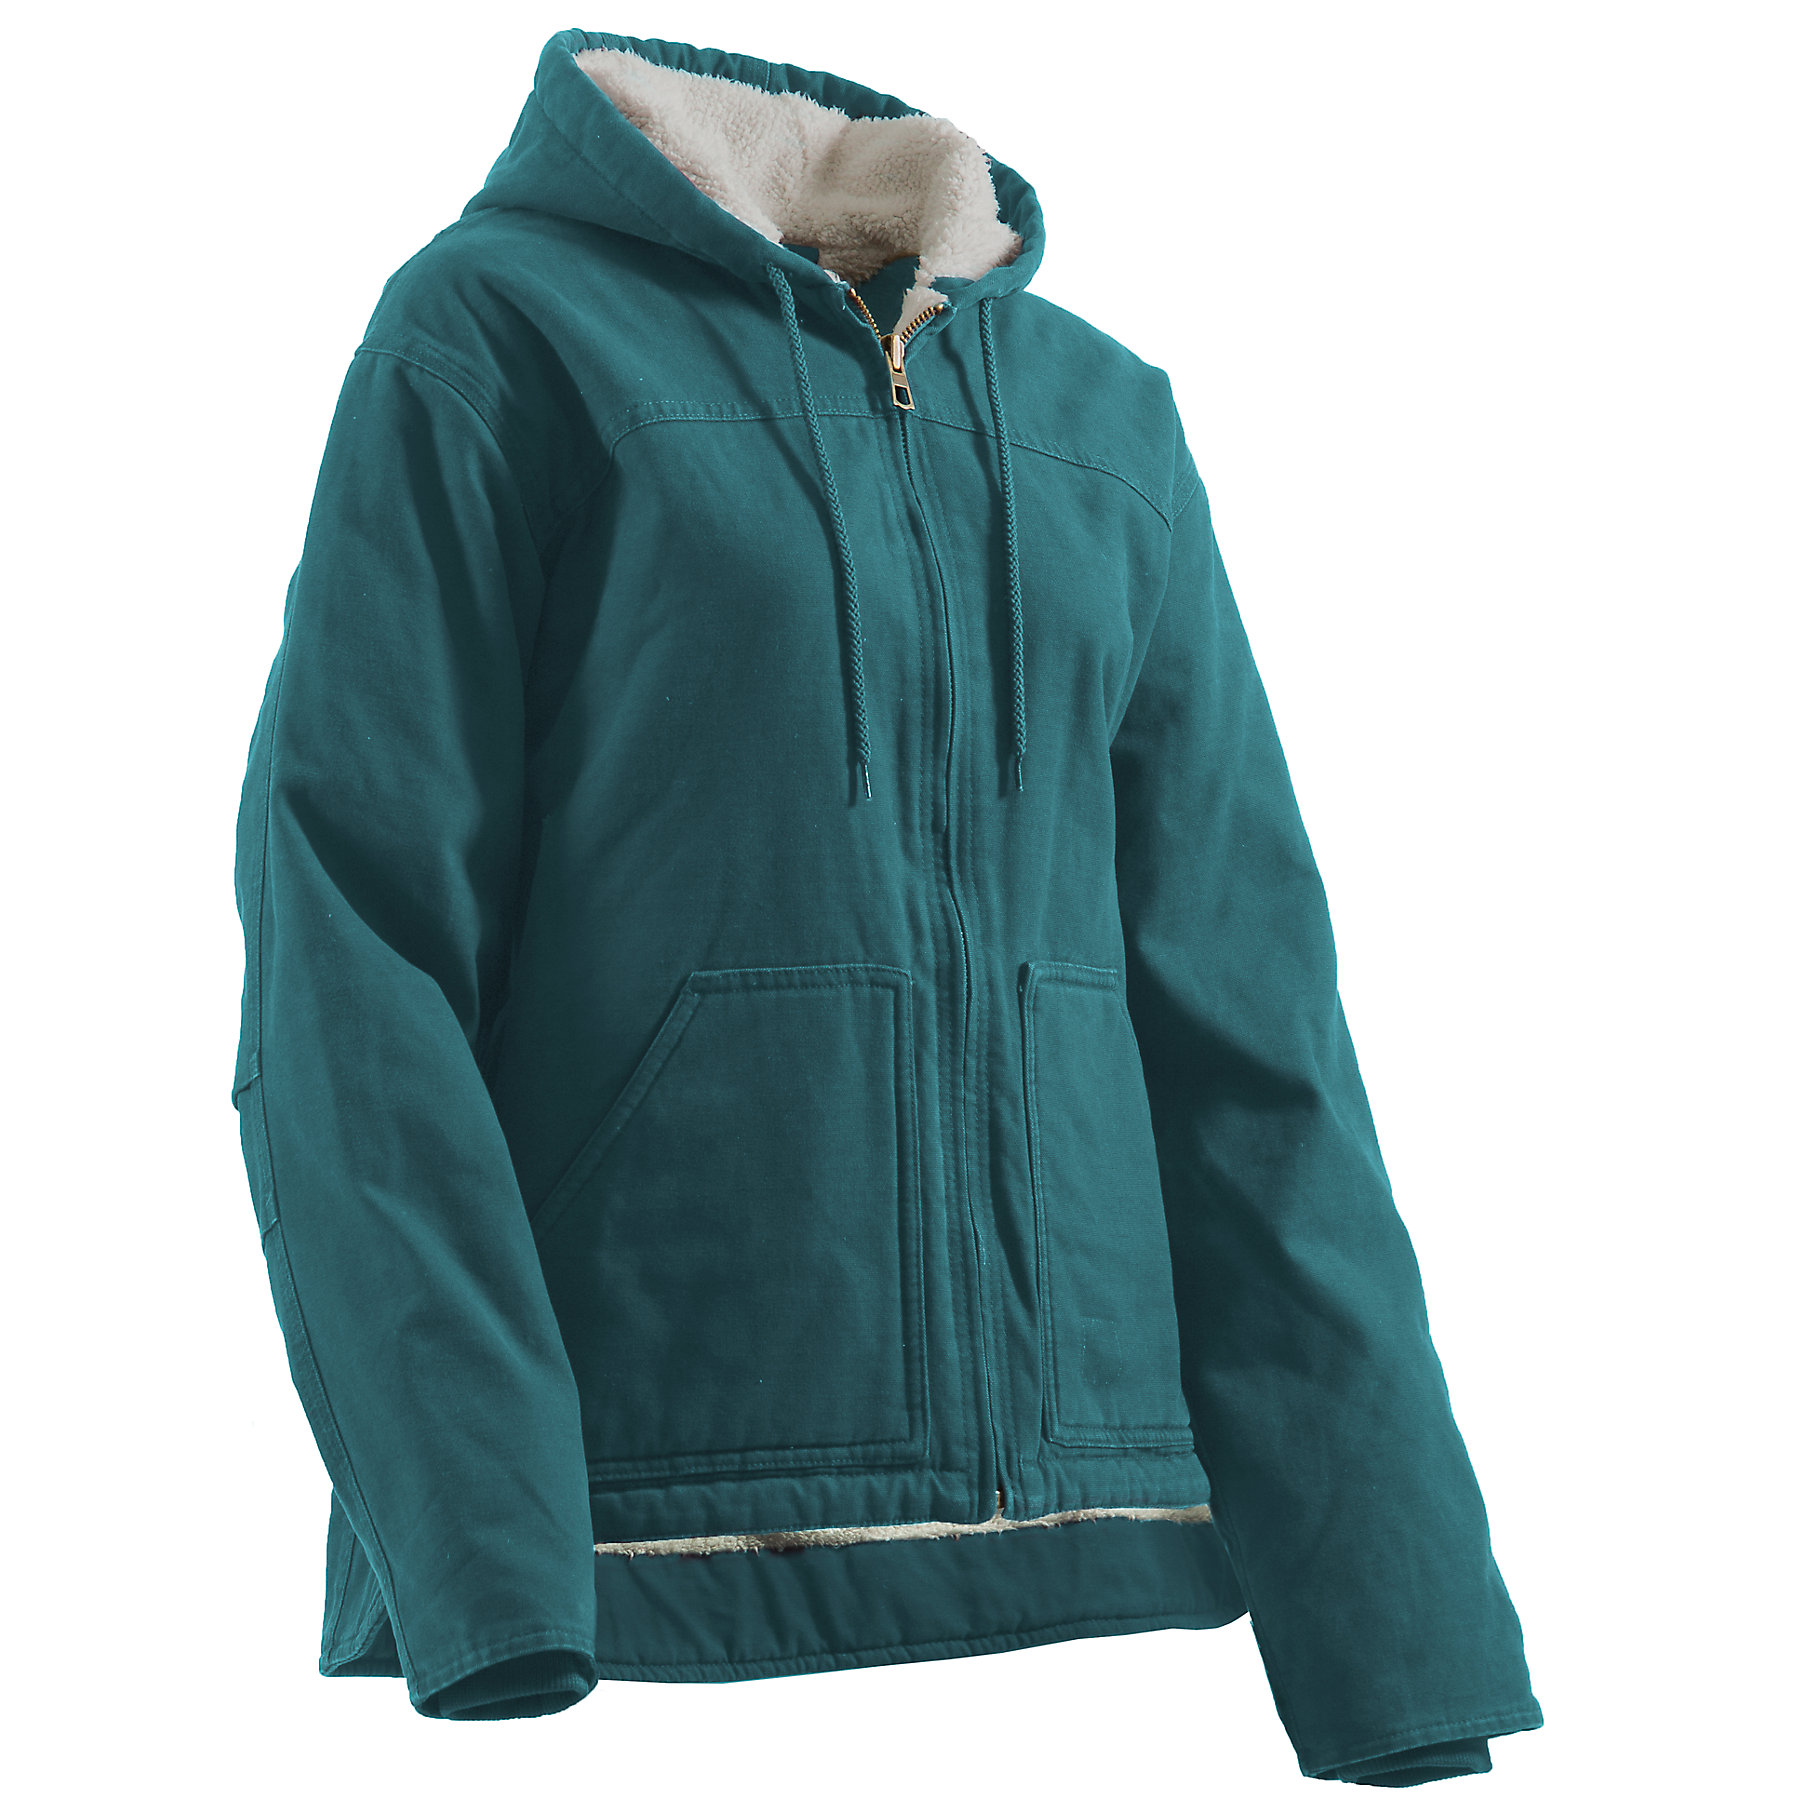 eb723688c Buy Ladies Washed Hooded Coat - Berne Apparel Online at Best price - MD